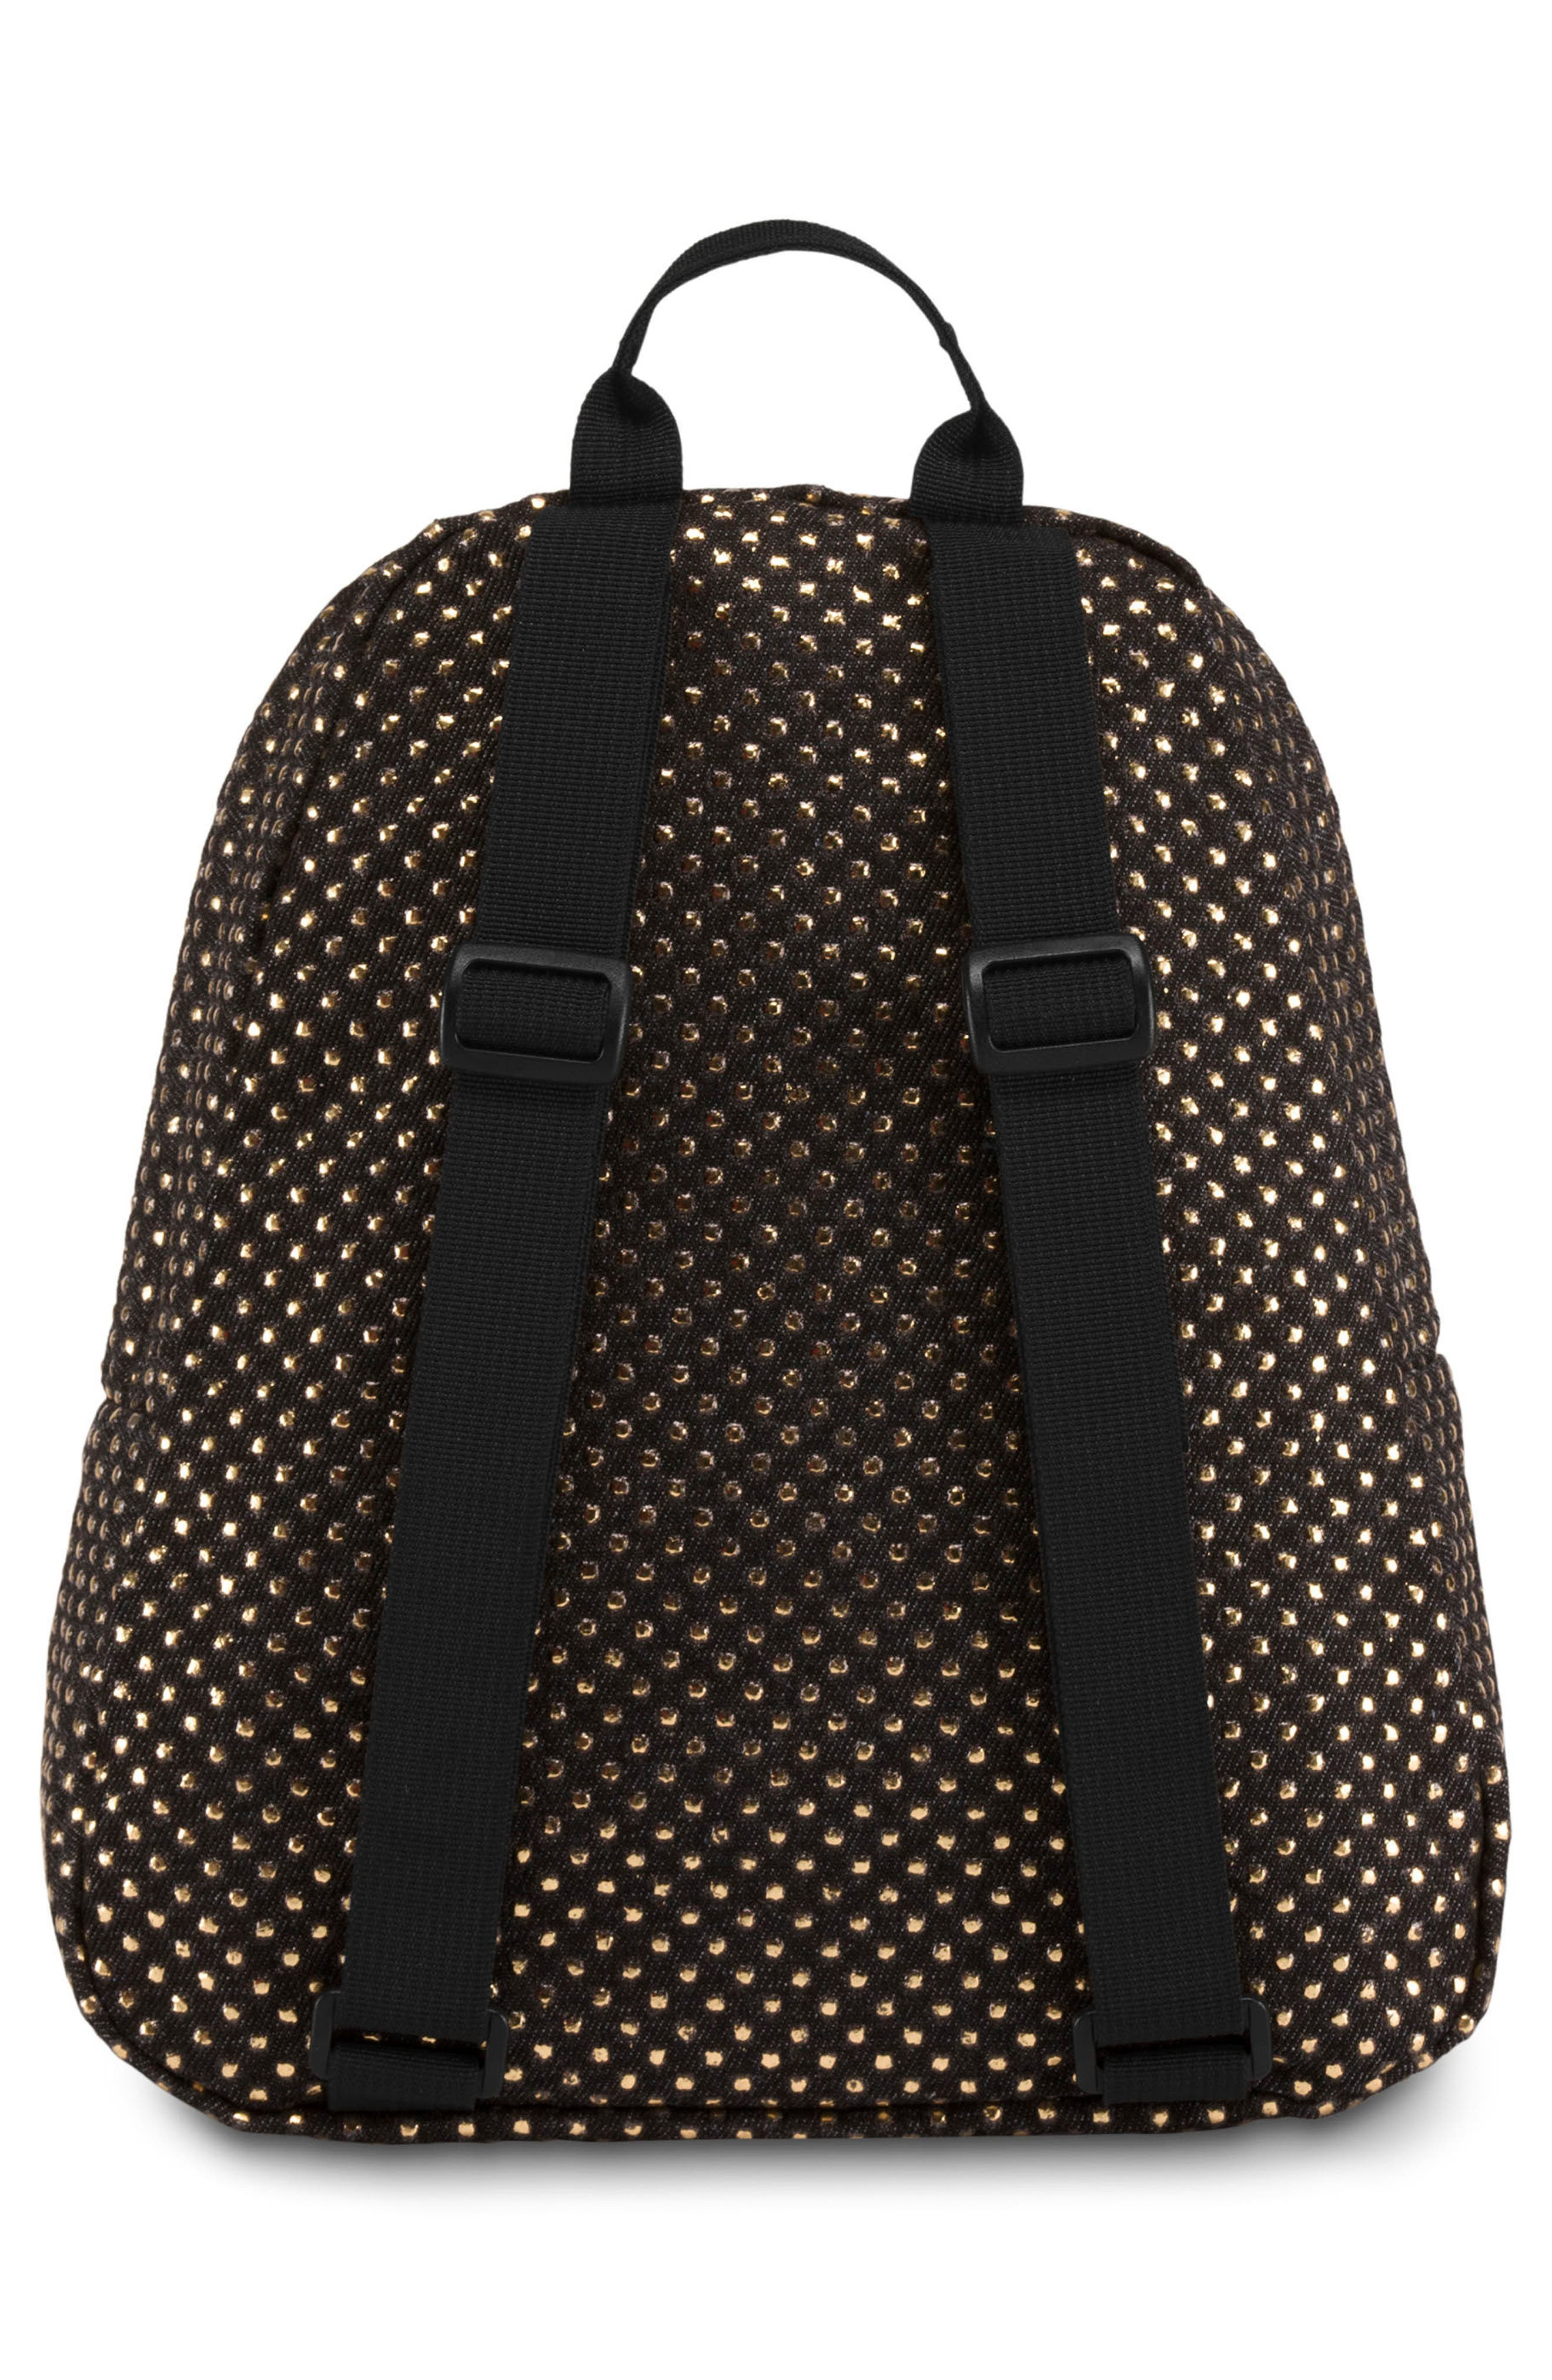 Half Pint Backpack,                             Alternate thumbnail 8, color,